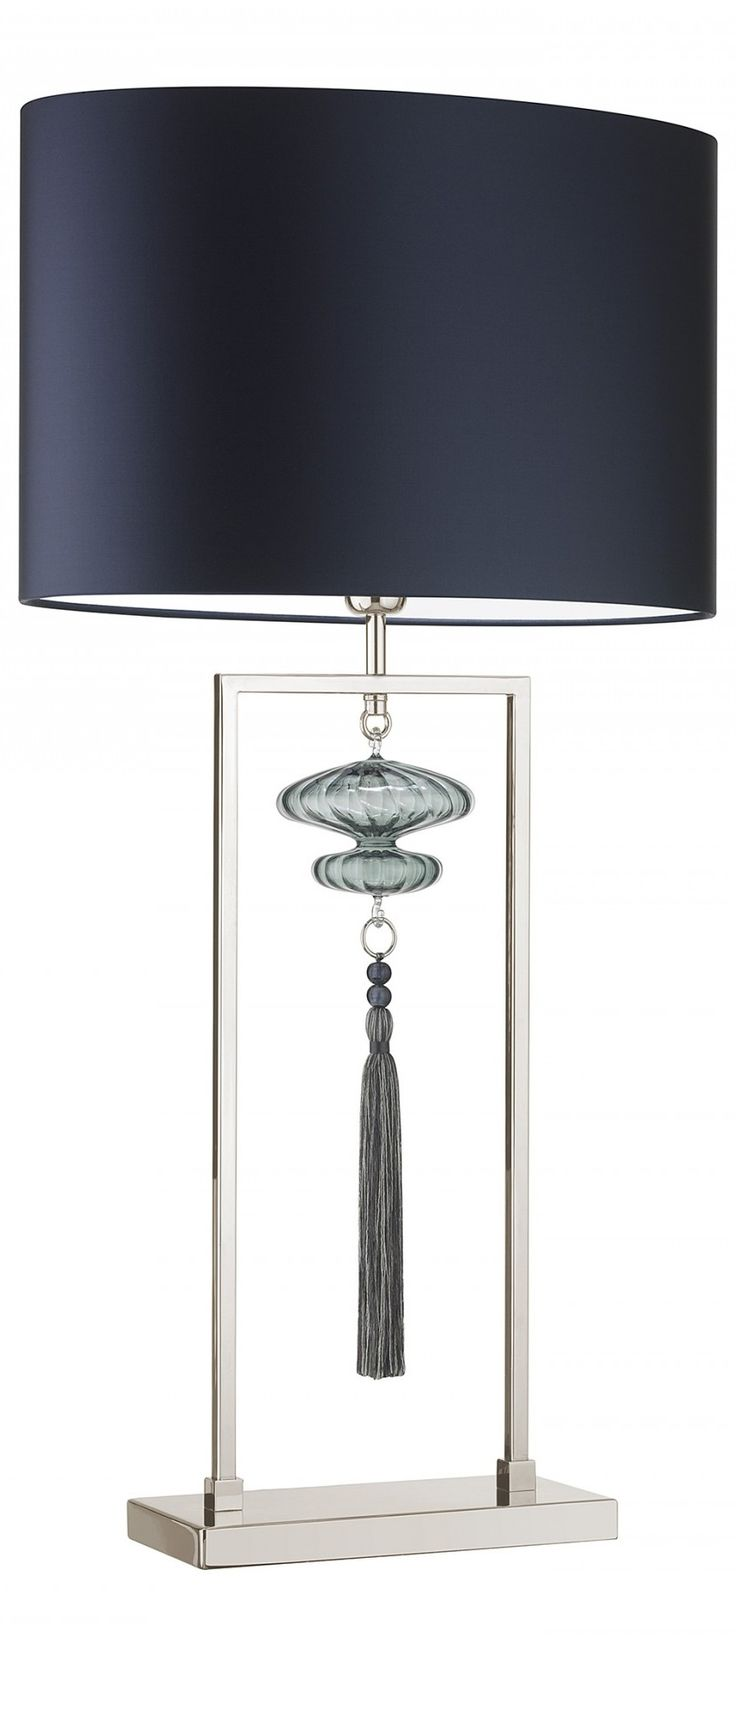 Blue blue table lamp table lamps modern table lamps for Contemporary table lamps for living room